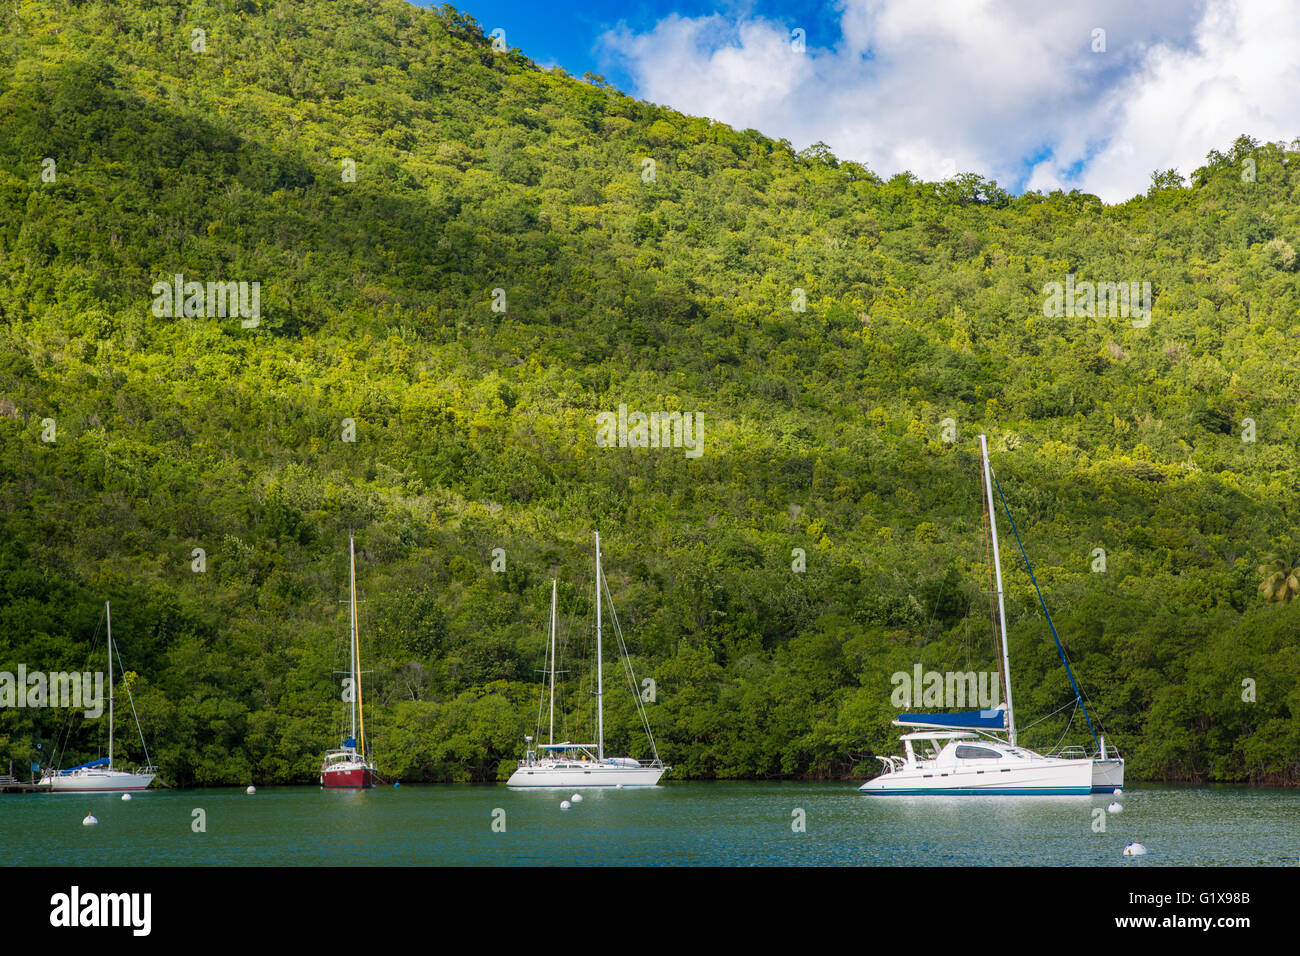 Boats moored in the tiny harbor at Marigot Bay, St. Lucia, West Indies - Stock Image